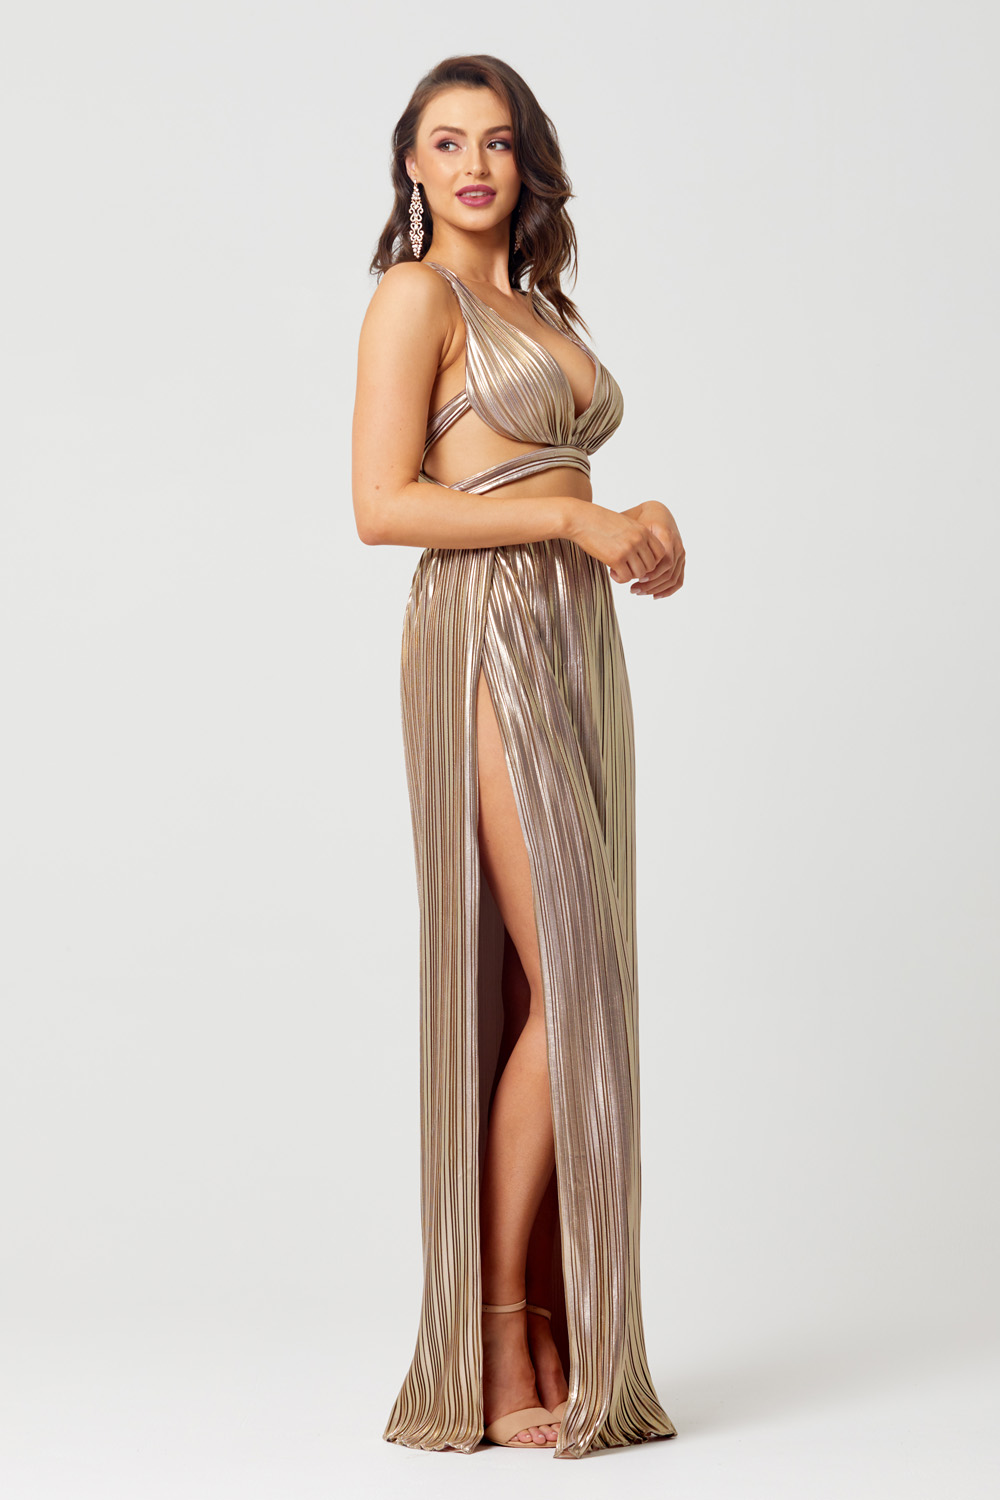 Elena Sunray Pleat Evening Dress - PO838 leg split